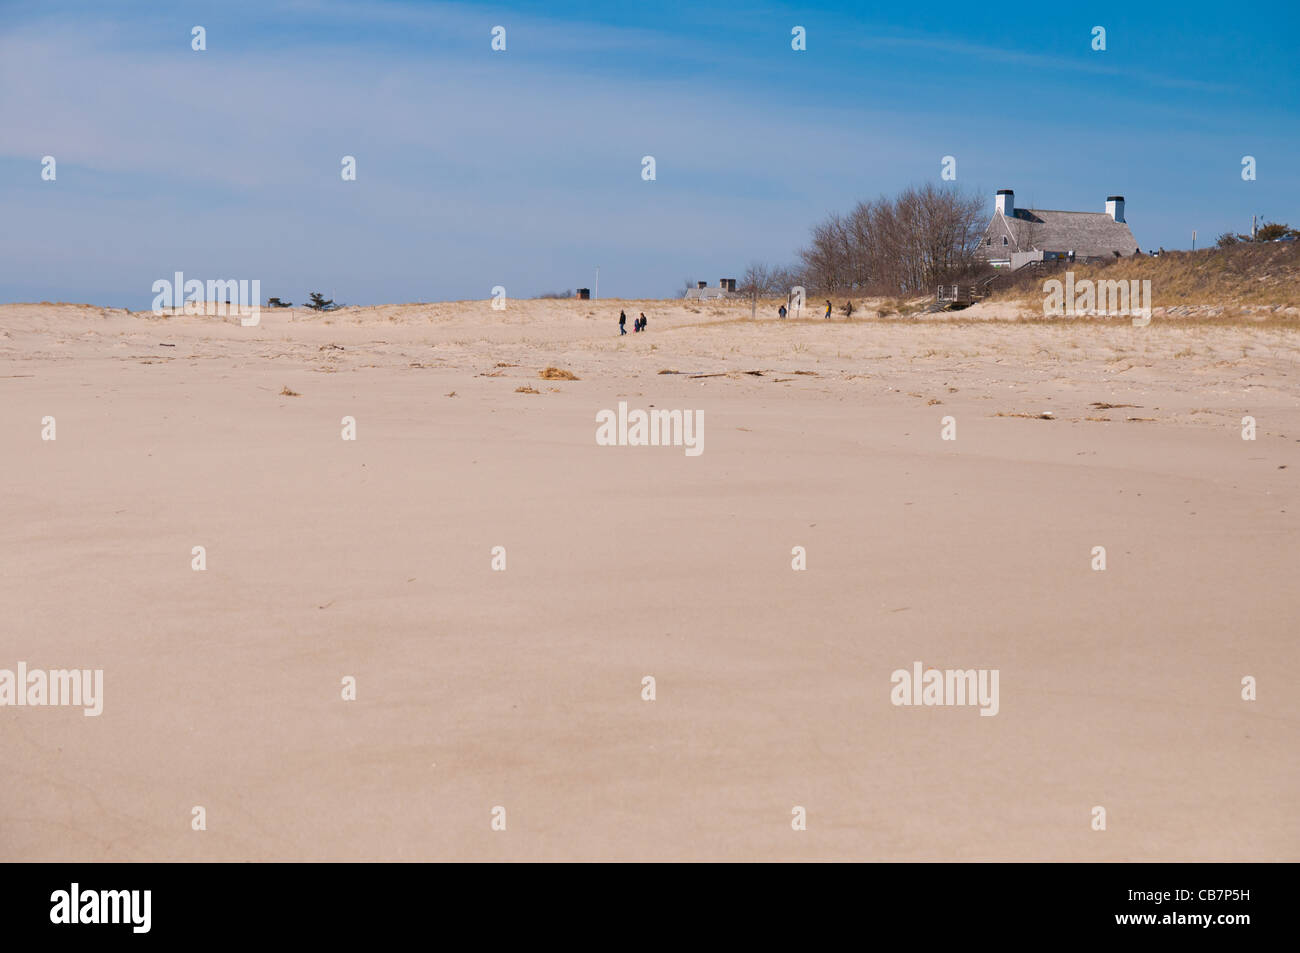 Sand dunes of lighthouse beach In low season in Chatham, Cape Cod Stock Photo